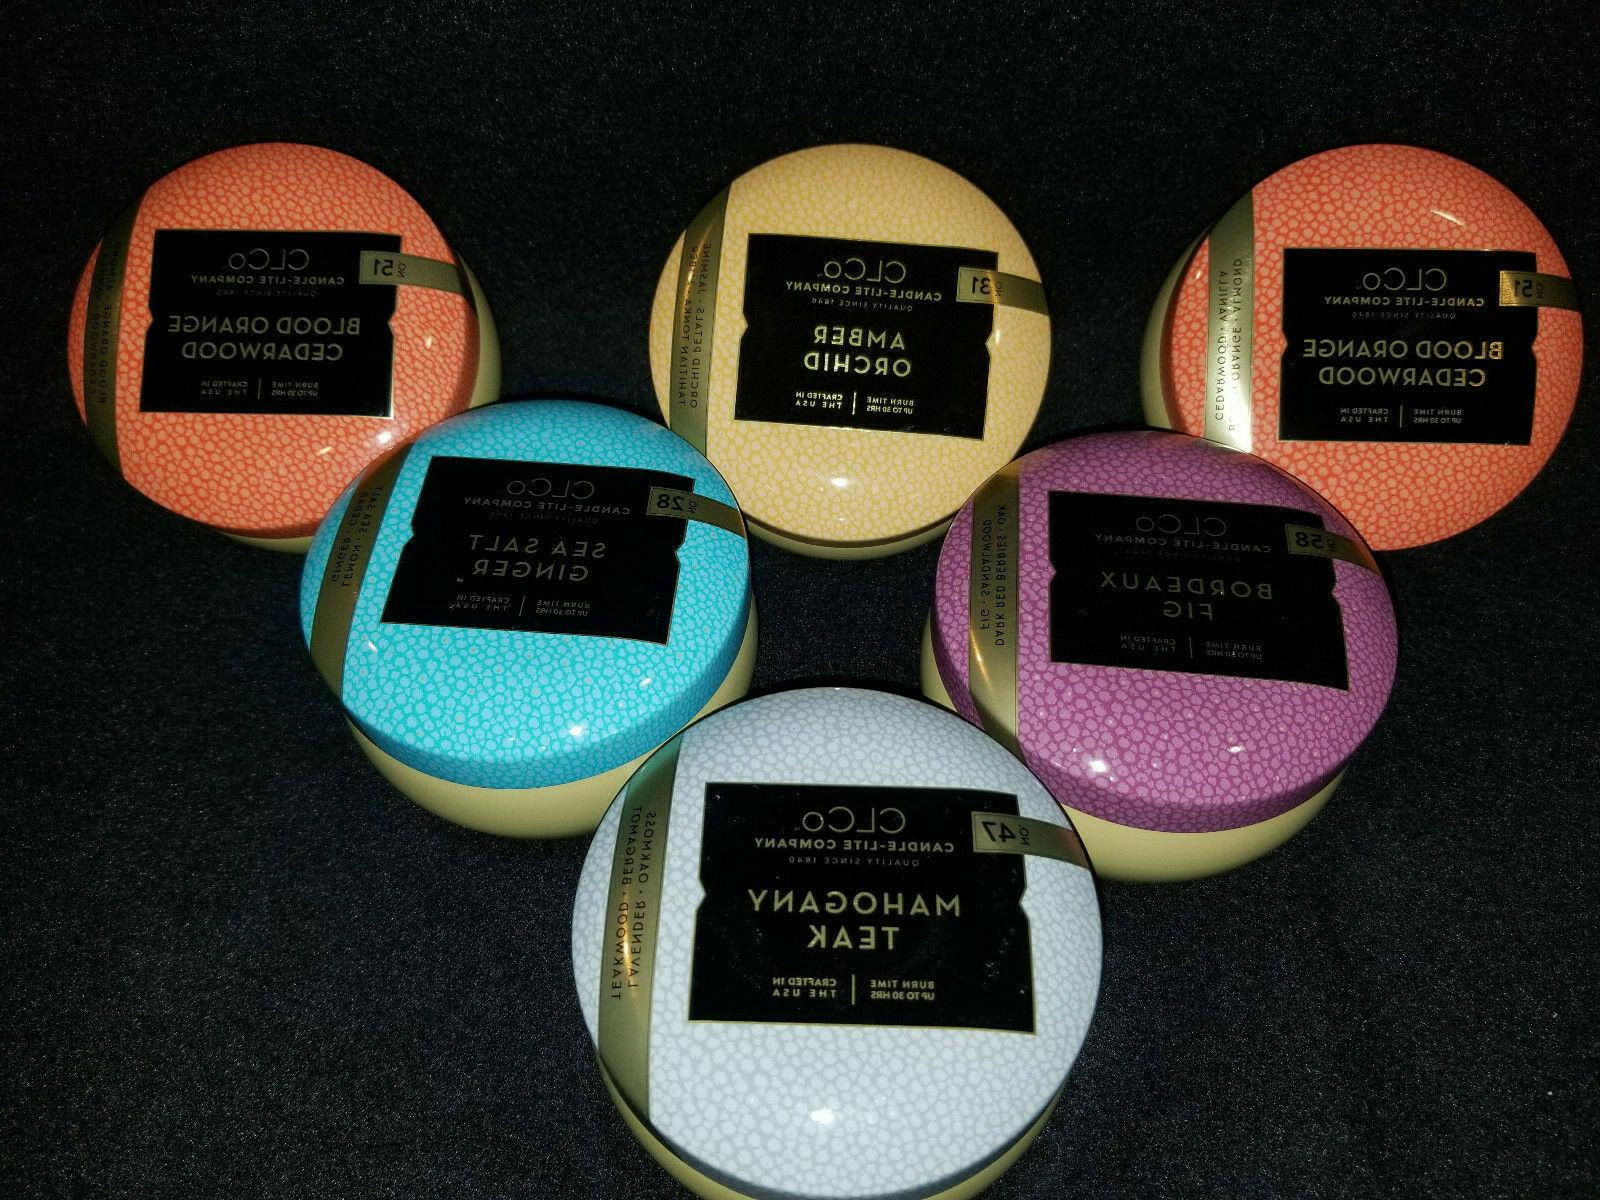 co new candles assorted scents perfect gift